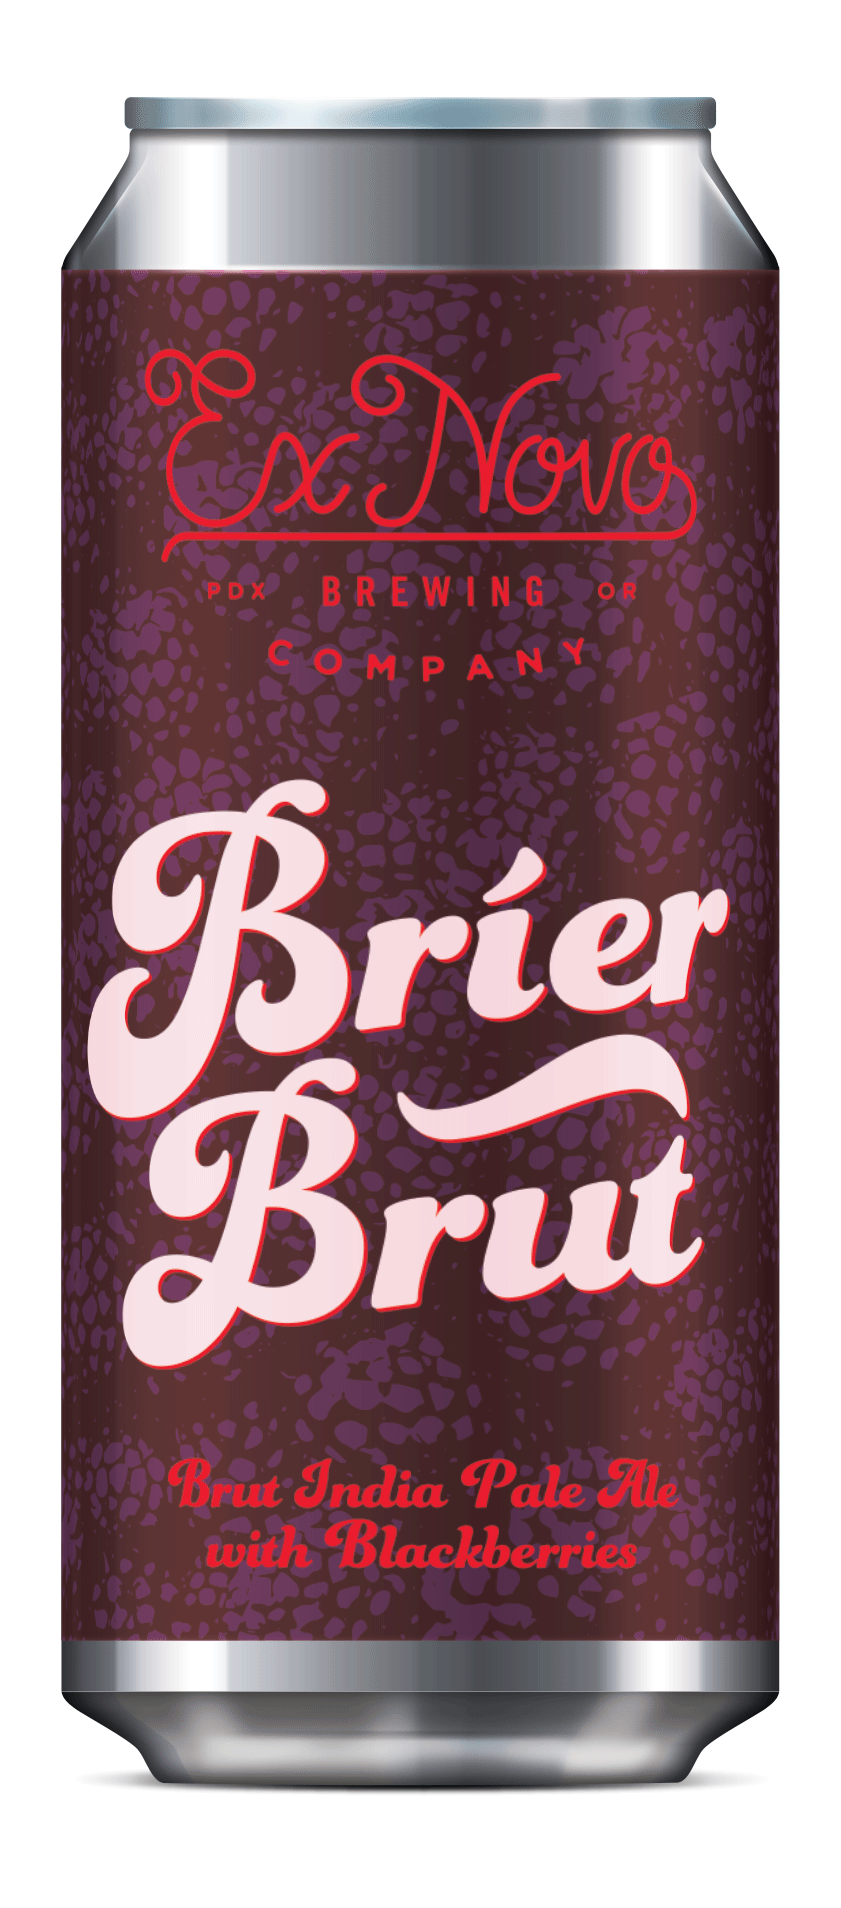 EX_Bottles_Brier-Brut.png